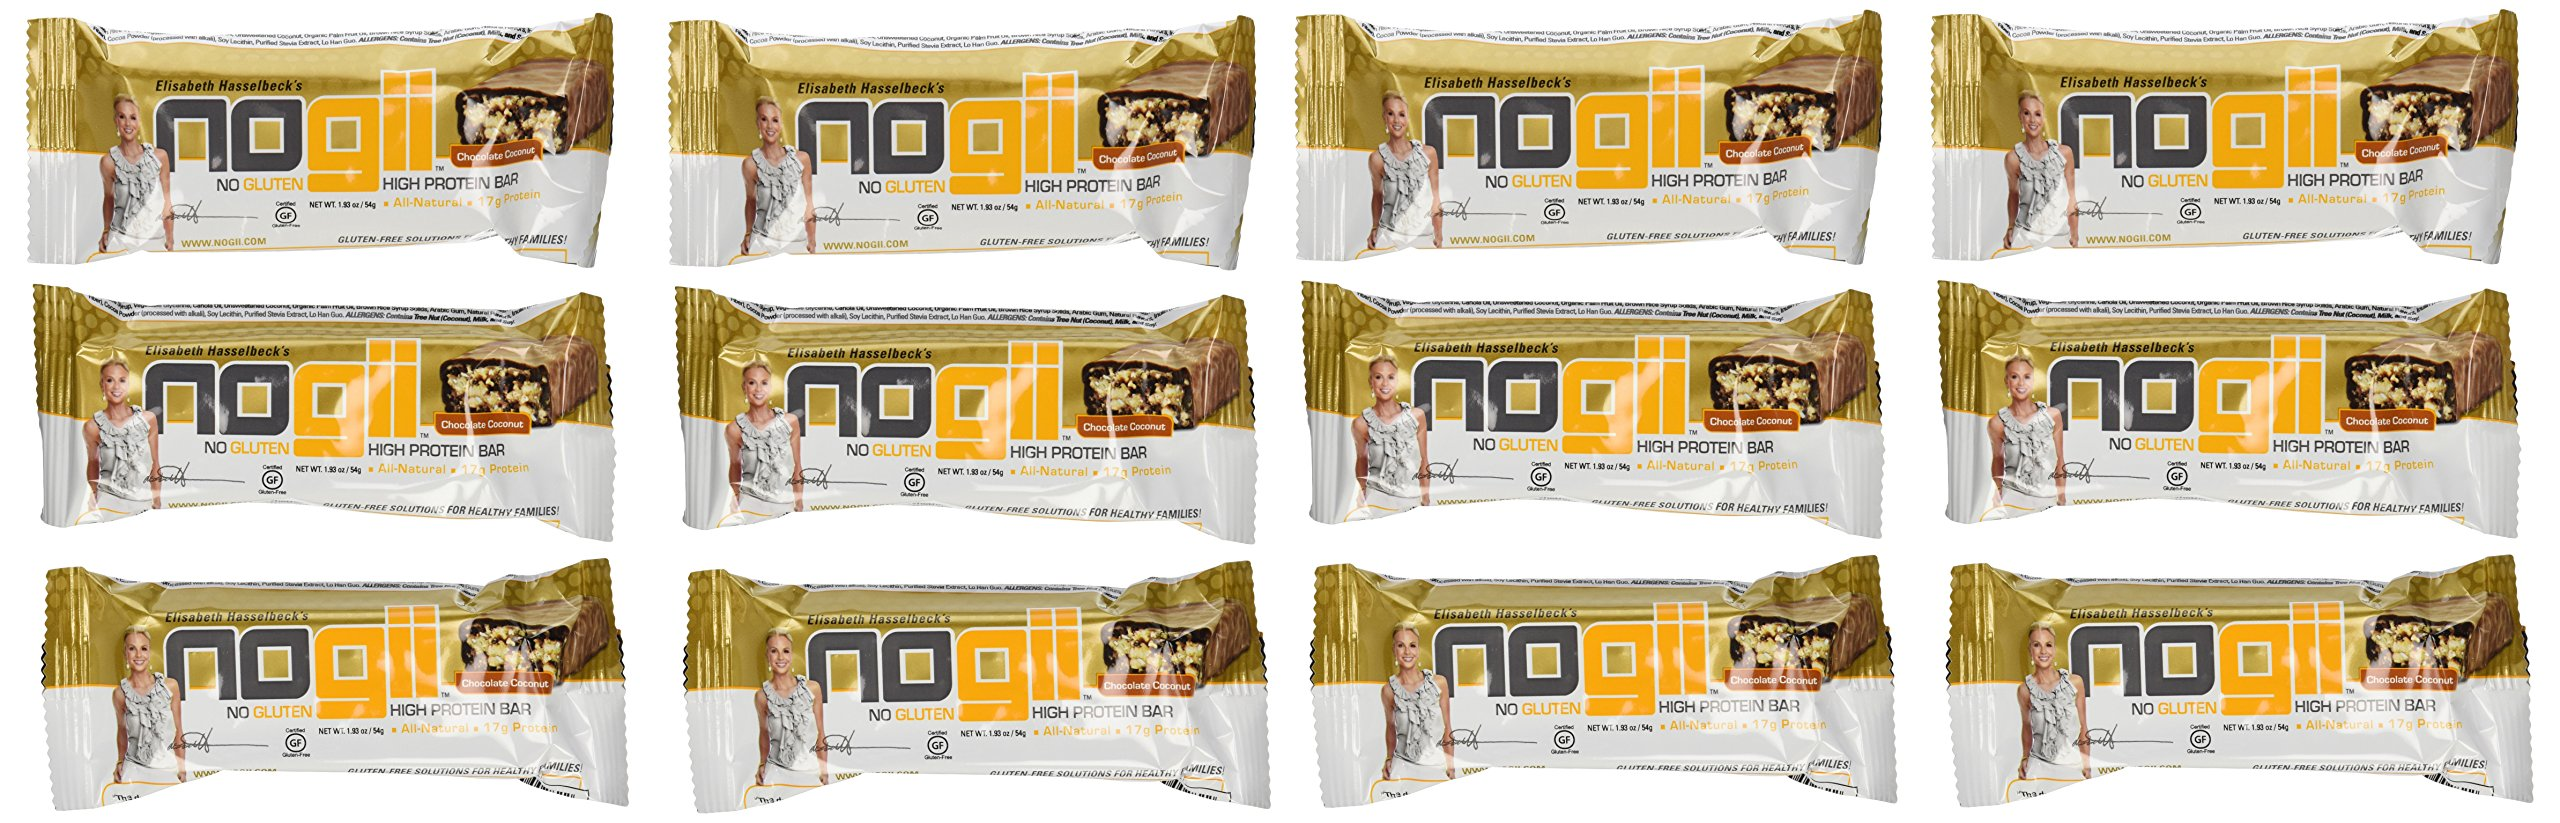 NoGii High Protein Nutritional Bar, Chocolate Coconut, 1.93 Ounce Bars, 12 Count by NoGii (Image #1)